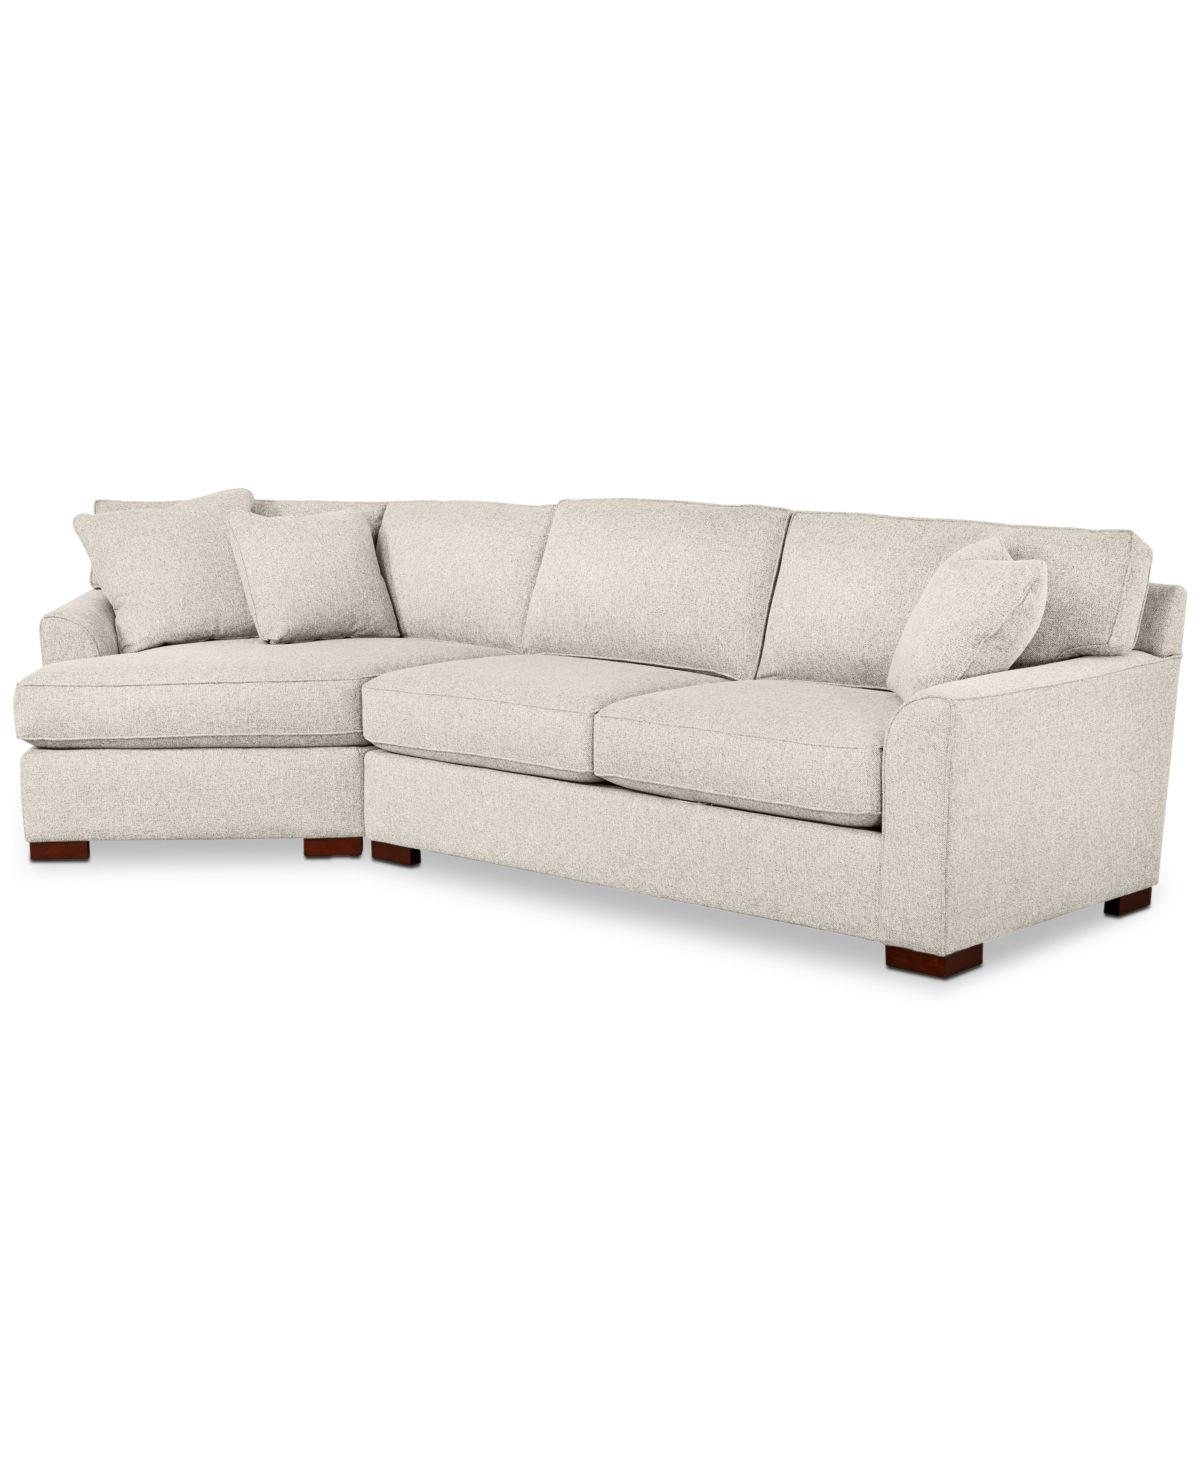 Carena 2 Pc Fabric Sectional Sofa With Cuddler Chaise Custom Colors Created For Macy S Triumph Sand Beige Special Order Sectional Sofa Fabric Sectional Sofa